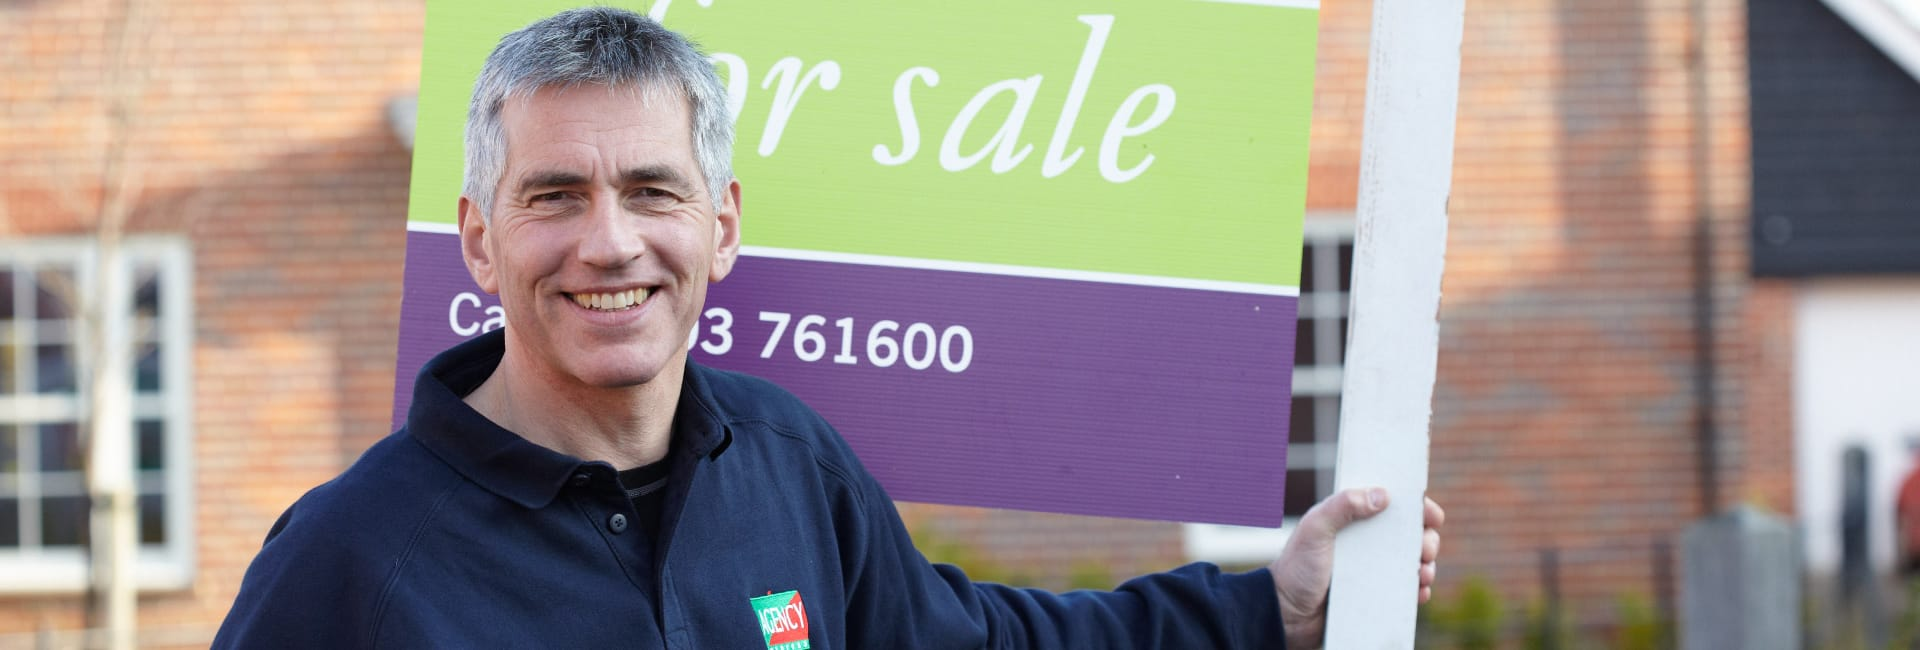 Agency Express franchisee success stories. Franchisee holding an estate agency for sale board.